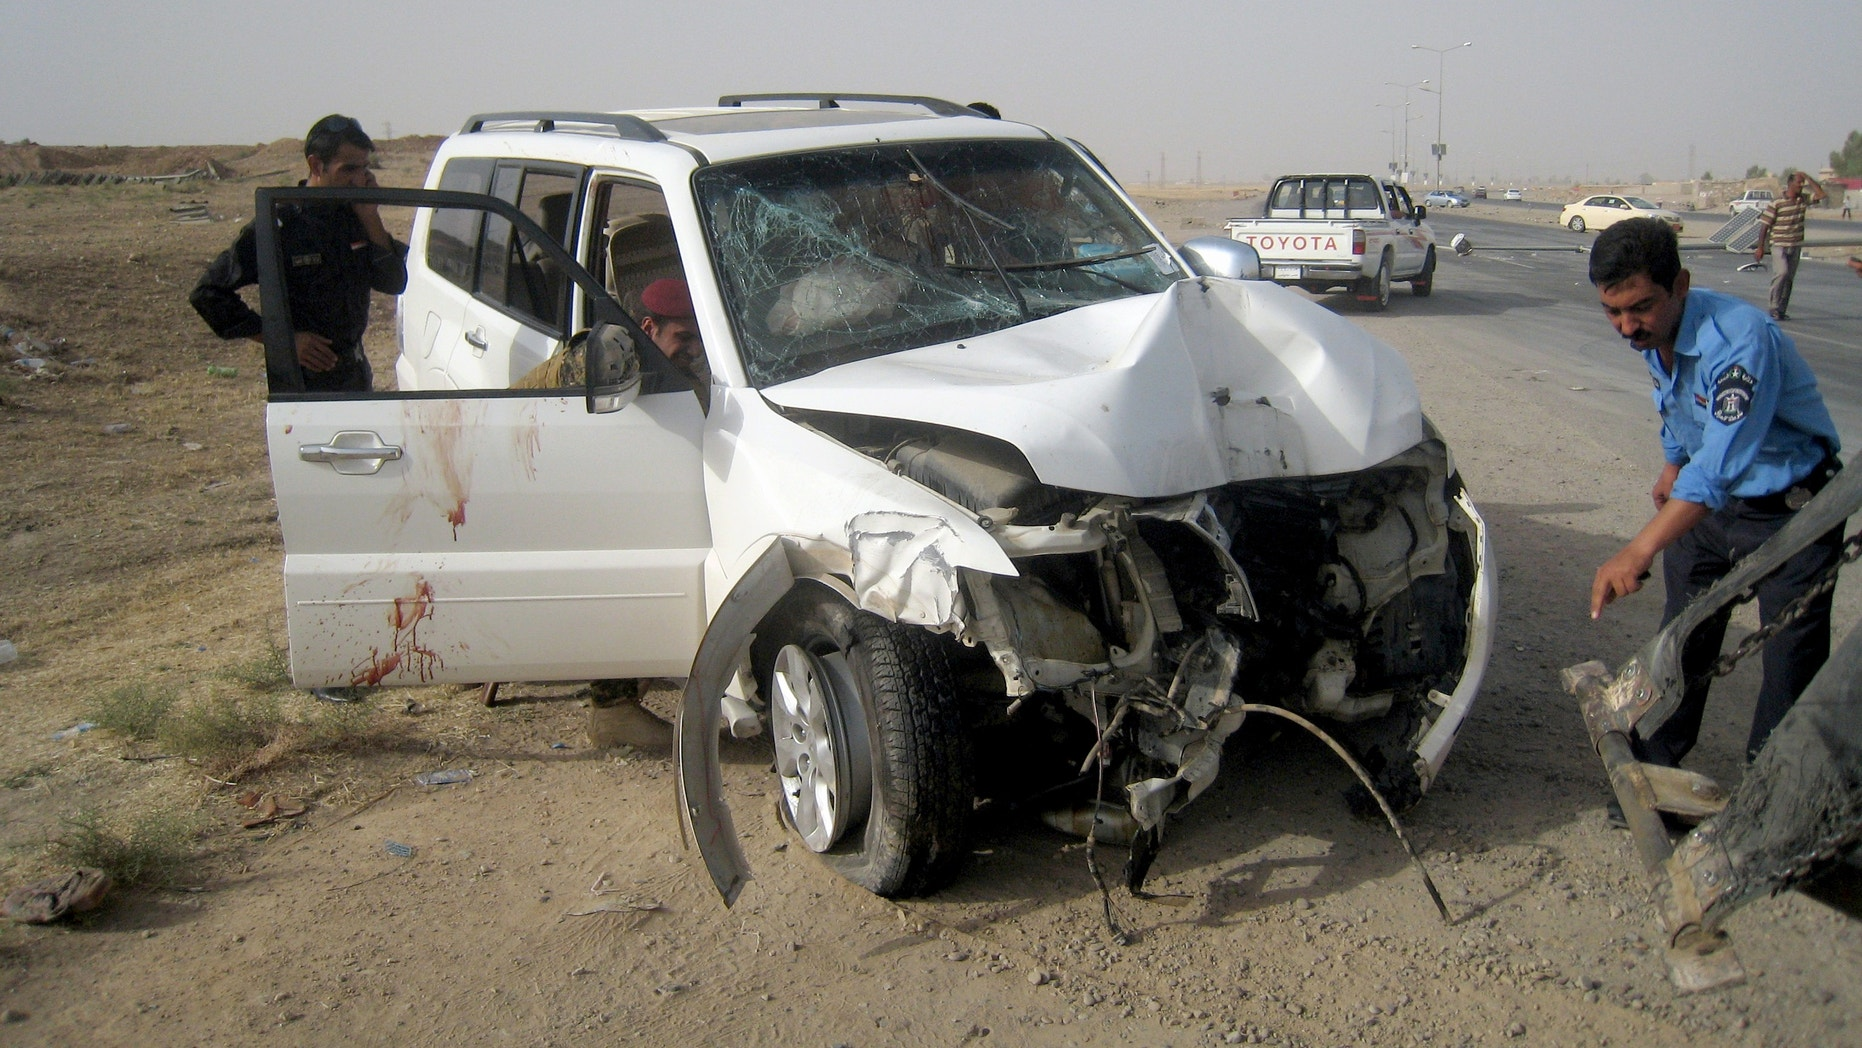 July 22, 2013 - Iraqi policemen prepare to tow away a damaged sport utility vehicle following a drive-by shooting in Kirkuk, north of Baghdad, Iraq.